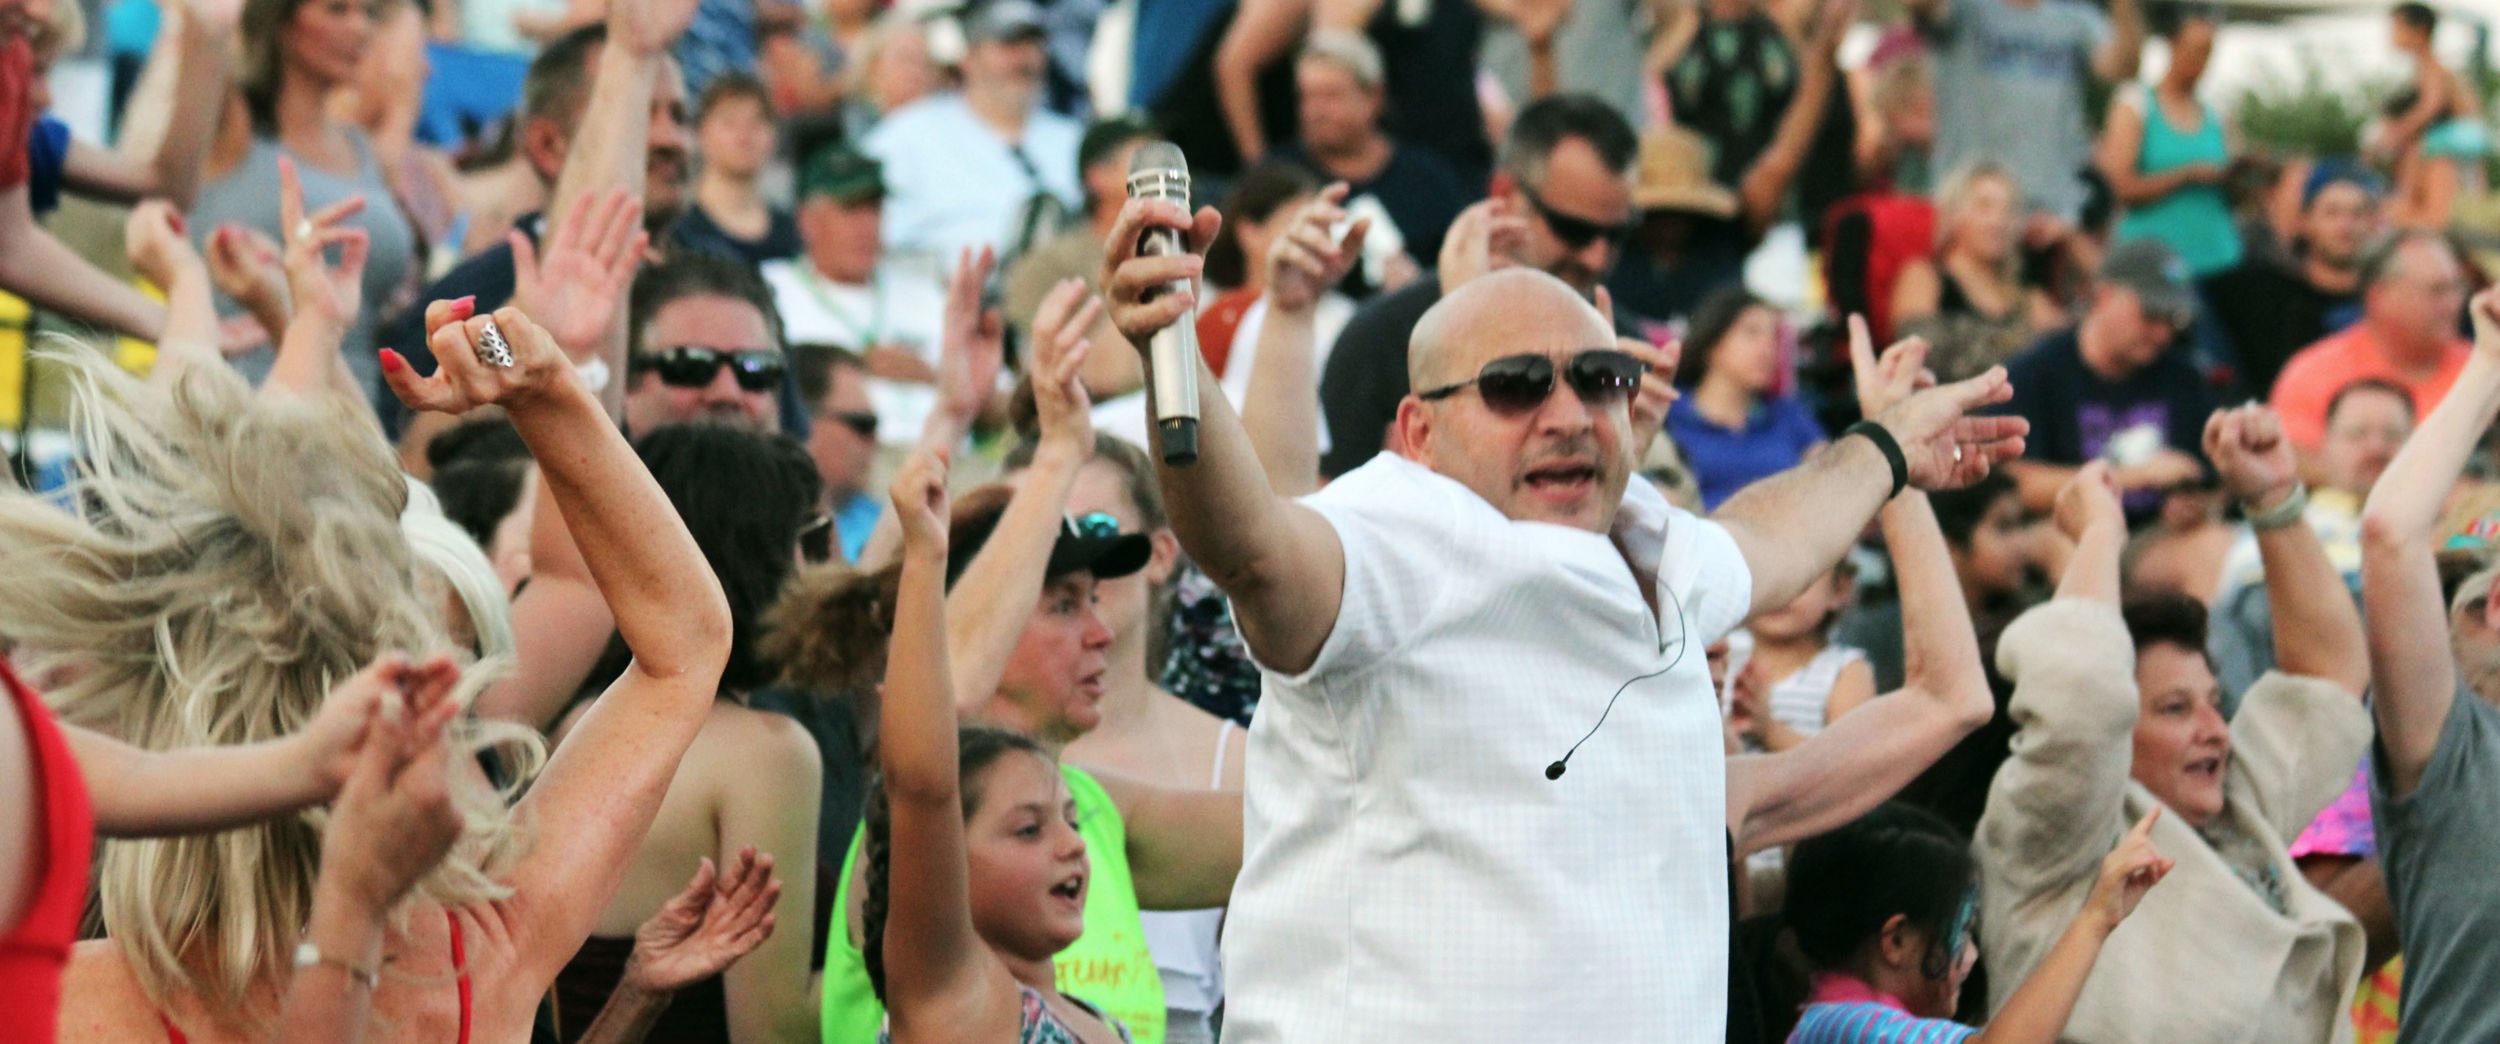 Deno Taglioli, founder and lead singer of Emerald City Band, rocking with the crowd.